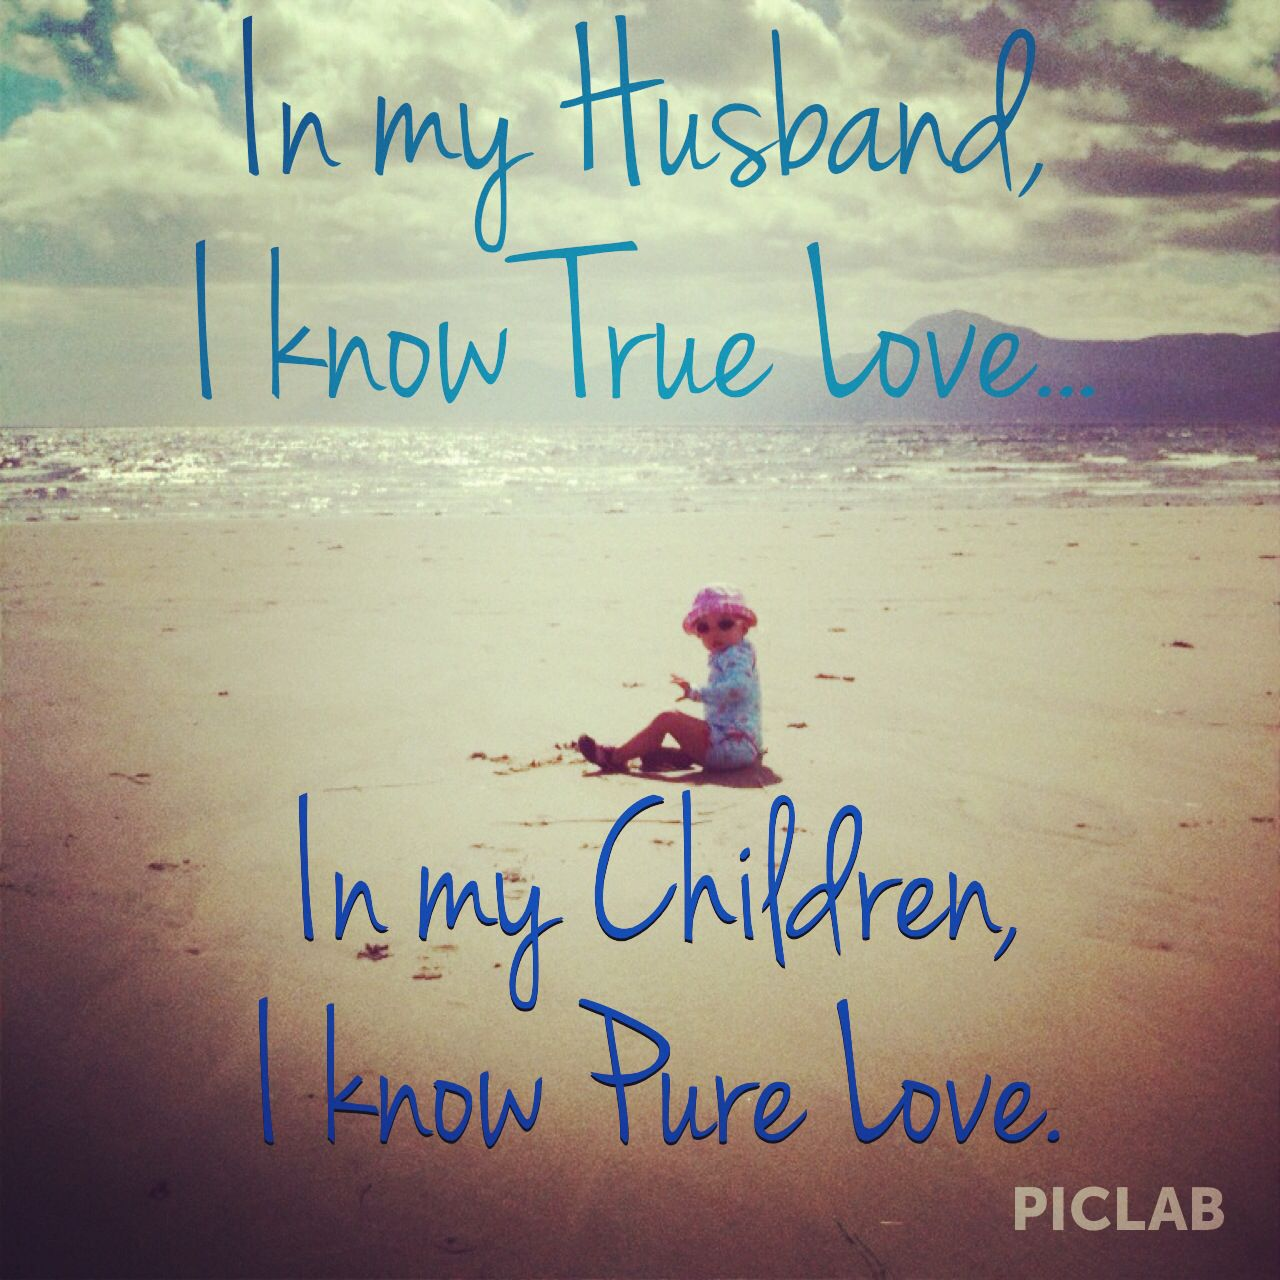 Truth Love Quote Husband Children In My Husband I Know True